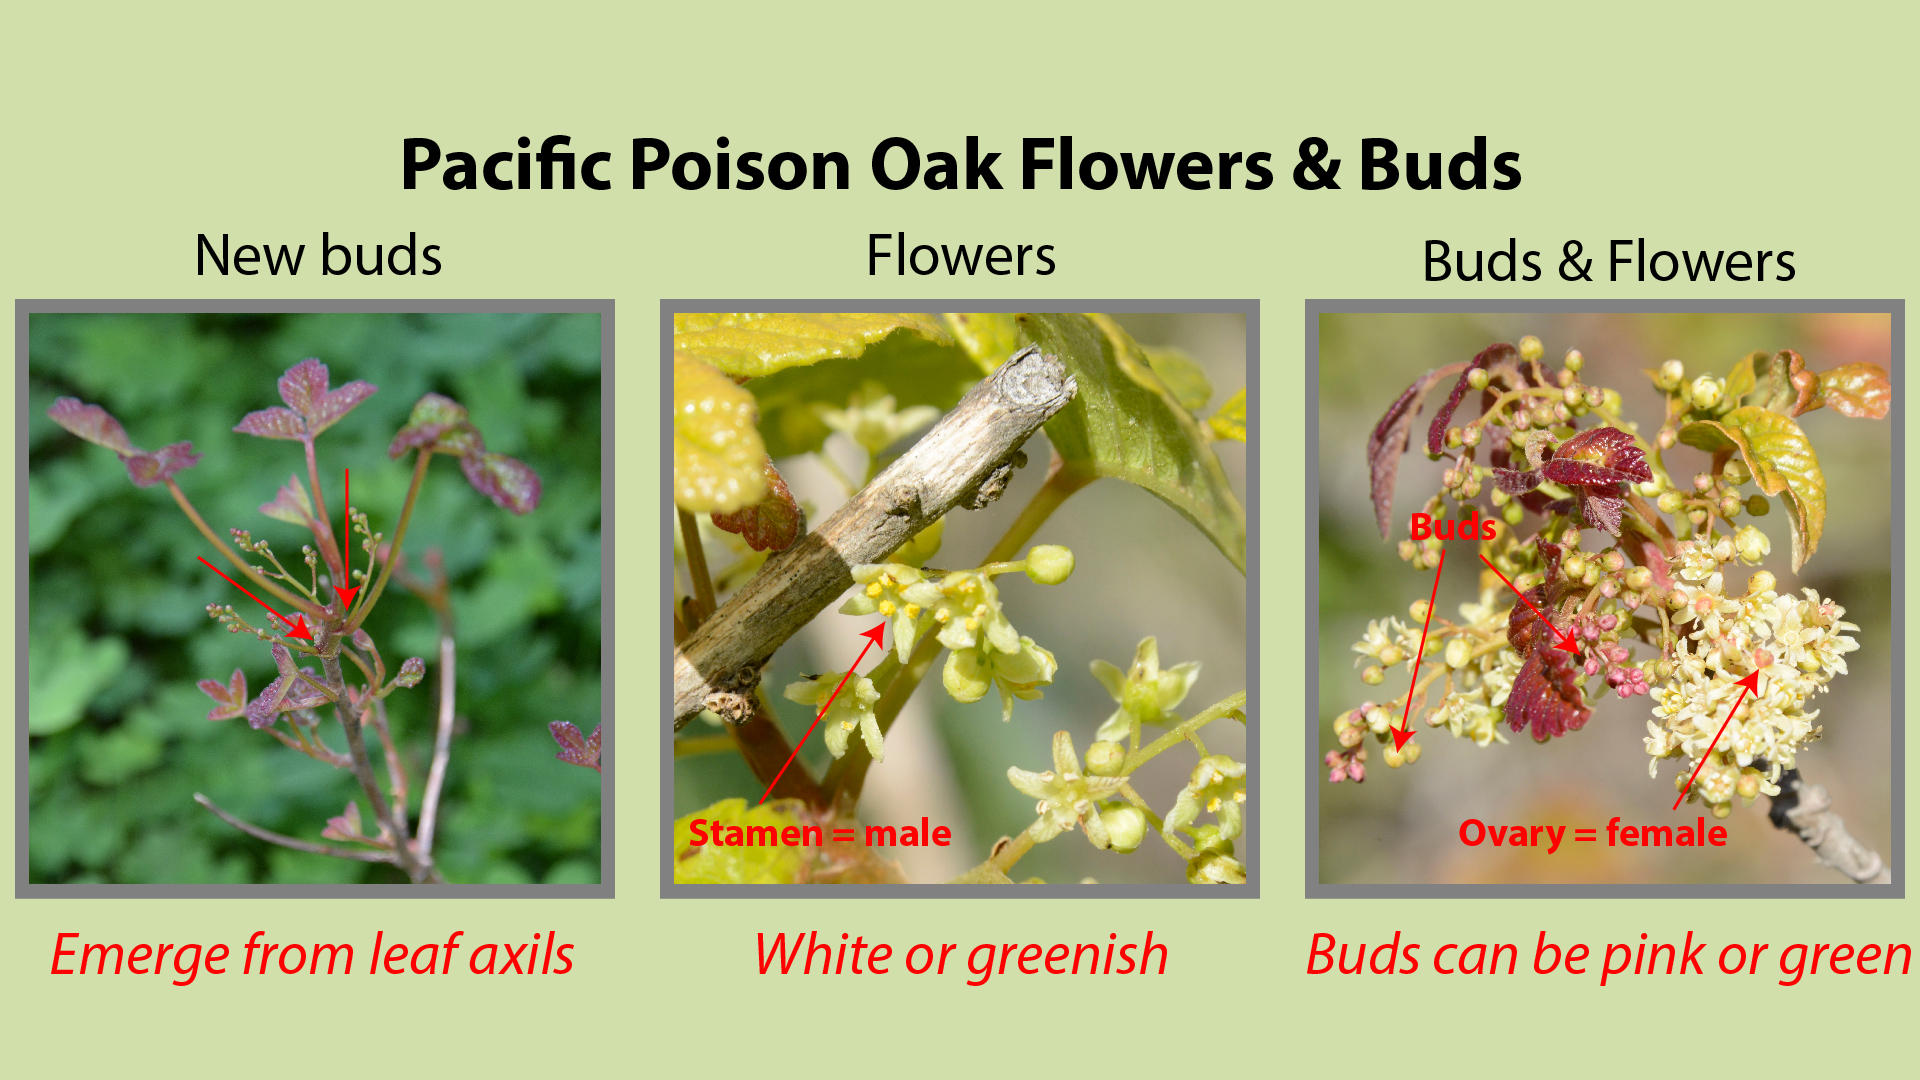 Pacific Poison Oak Flowers and Buds